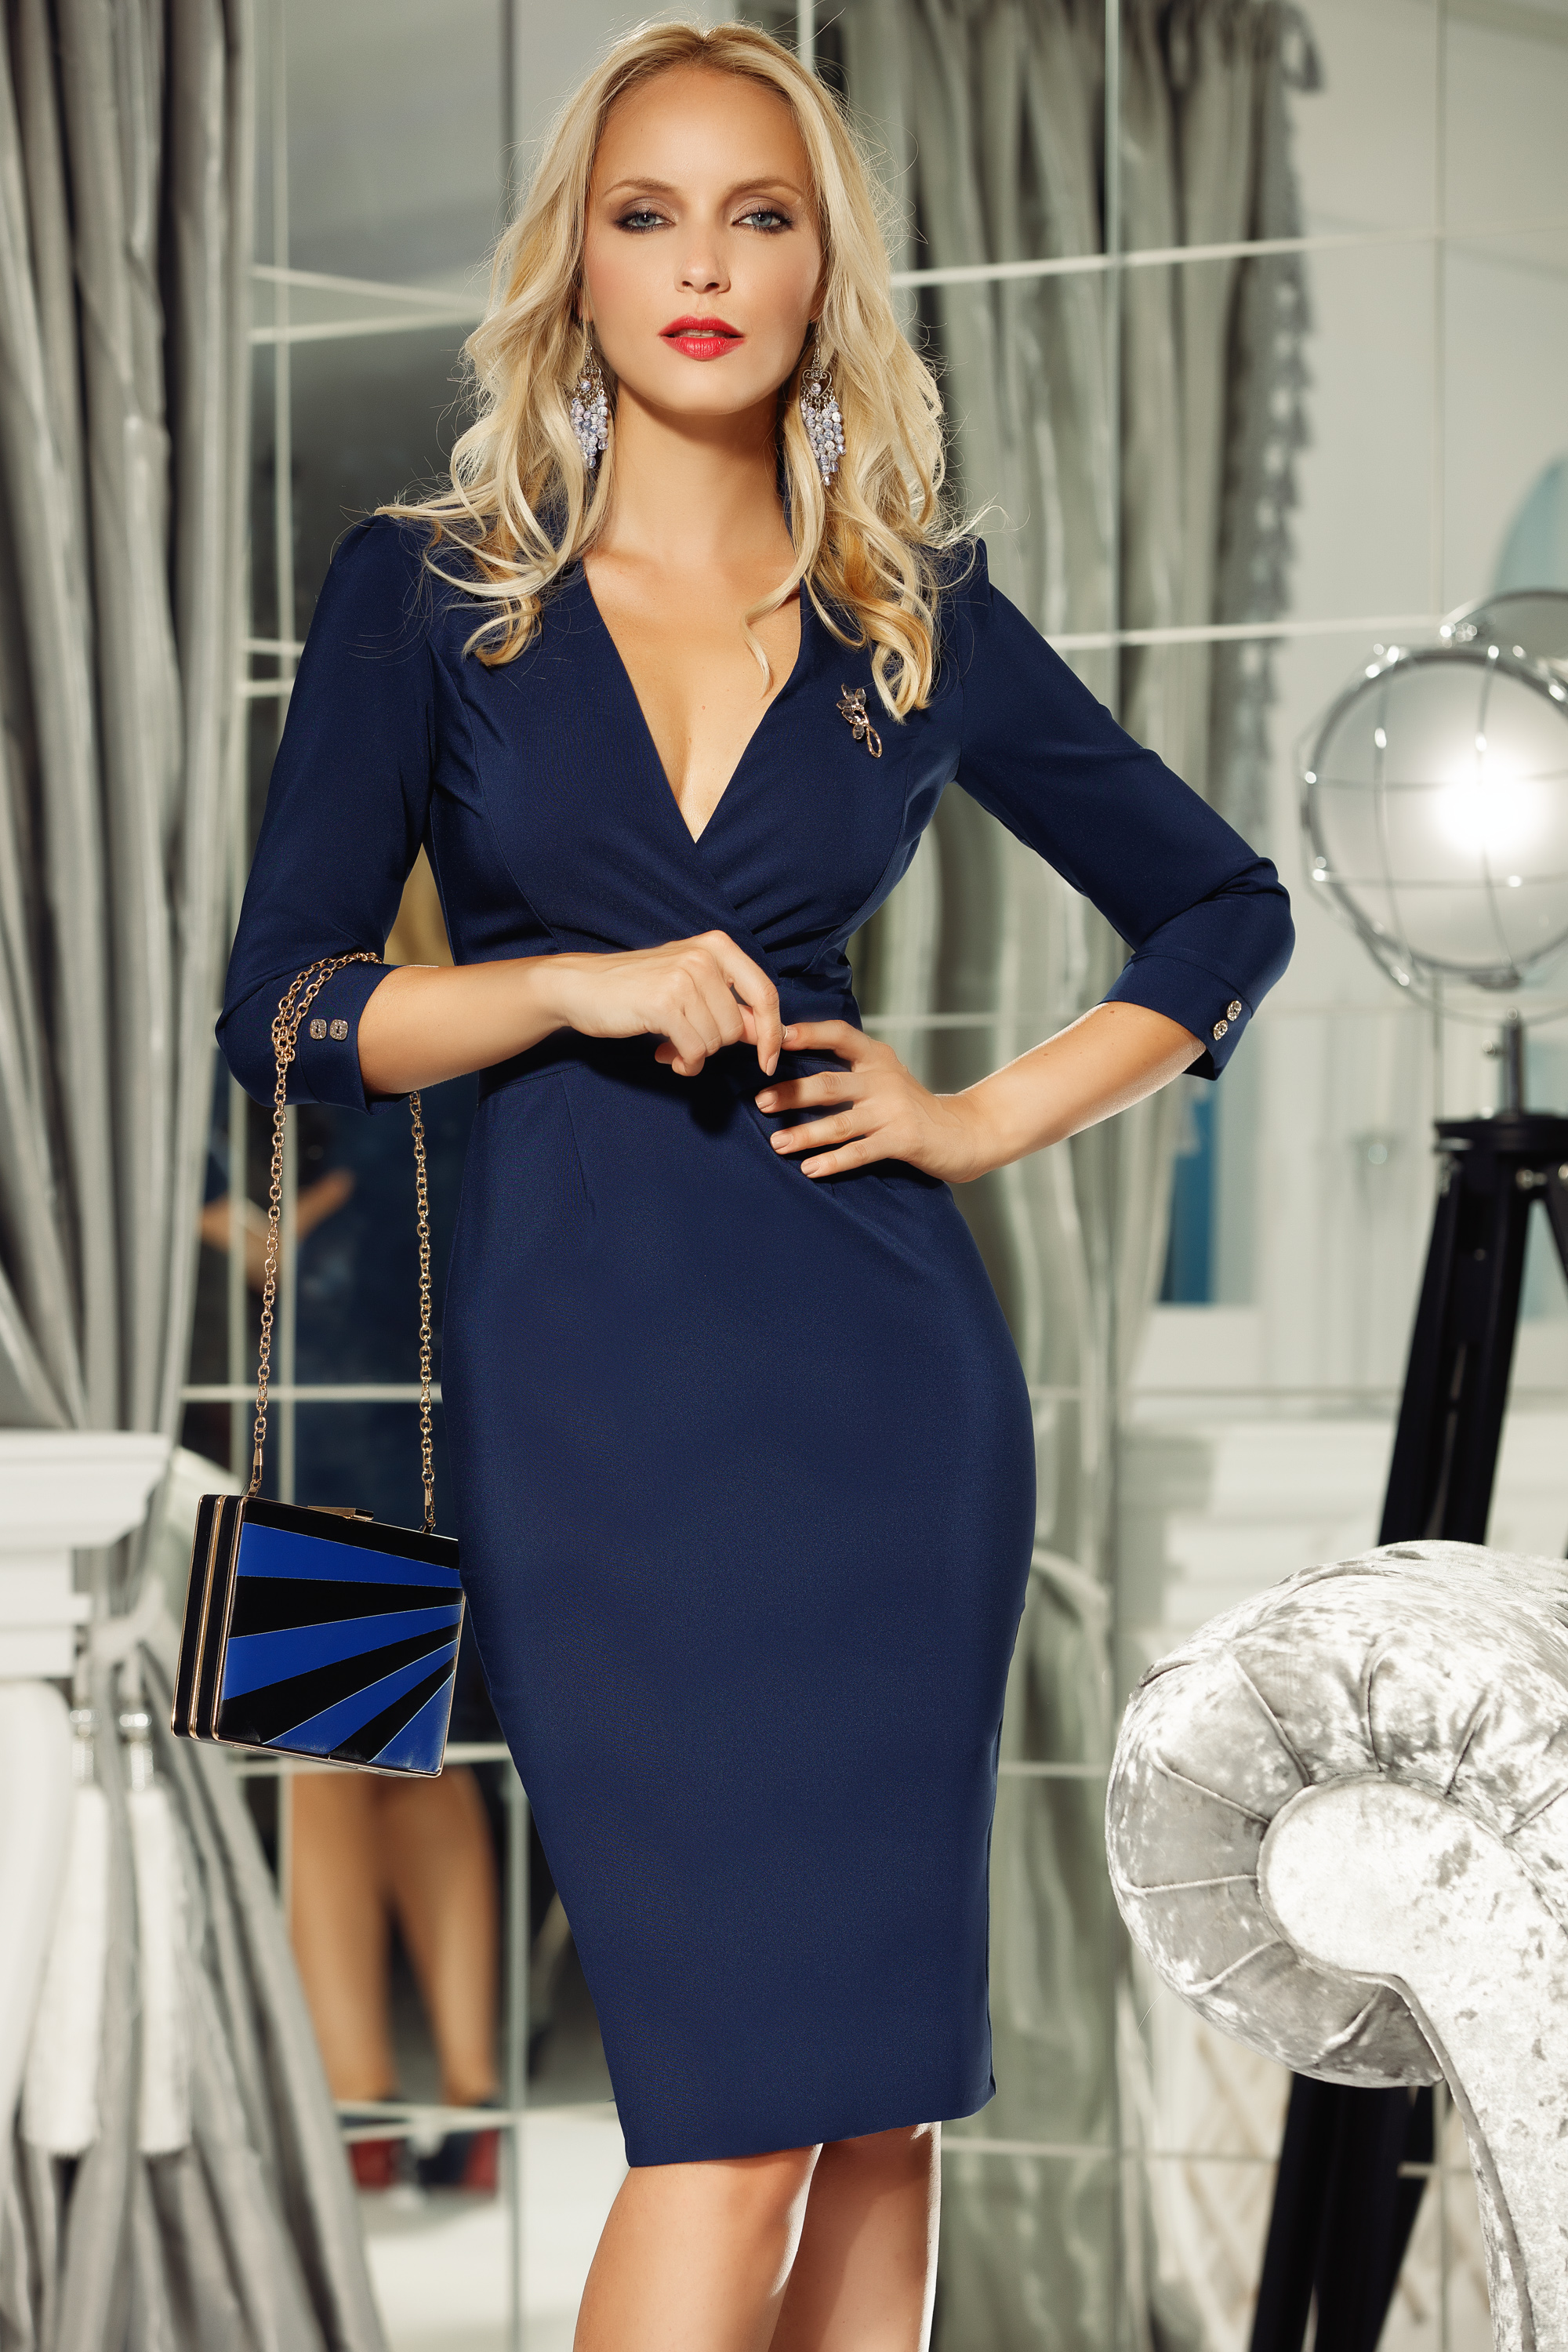 Fofy darkblue dress office pencil slightly elastic fabric with v-neckline accessorized with breastpin